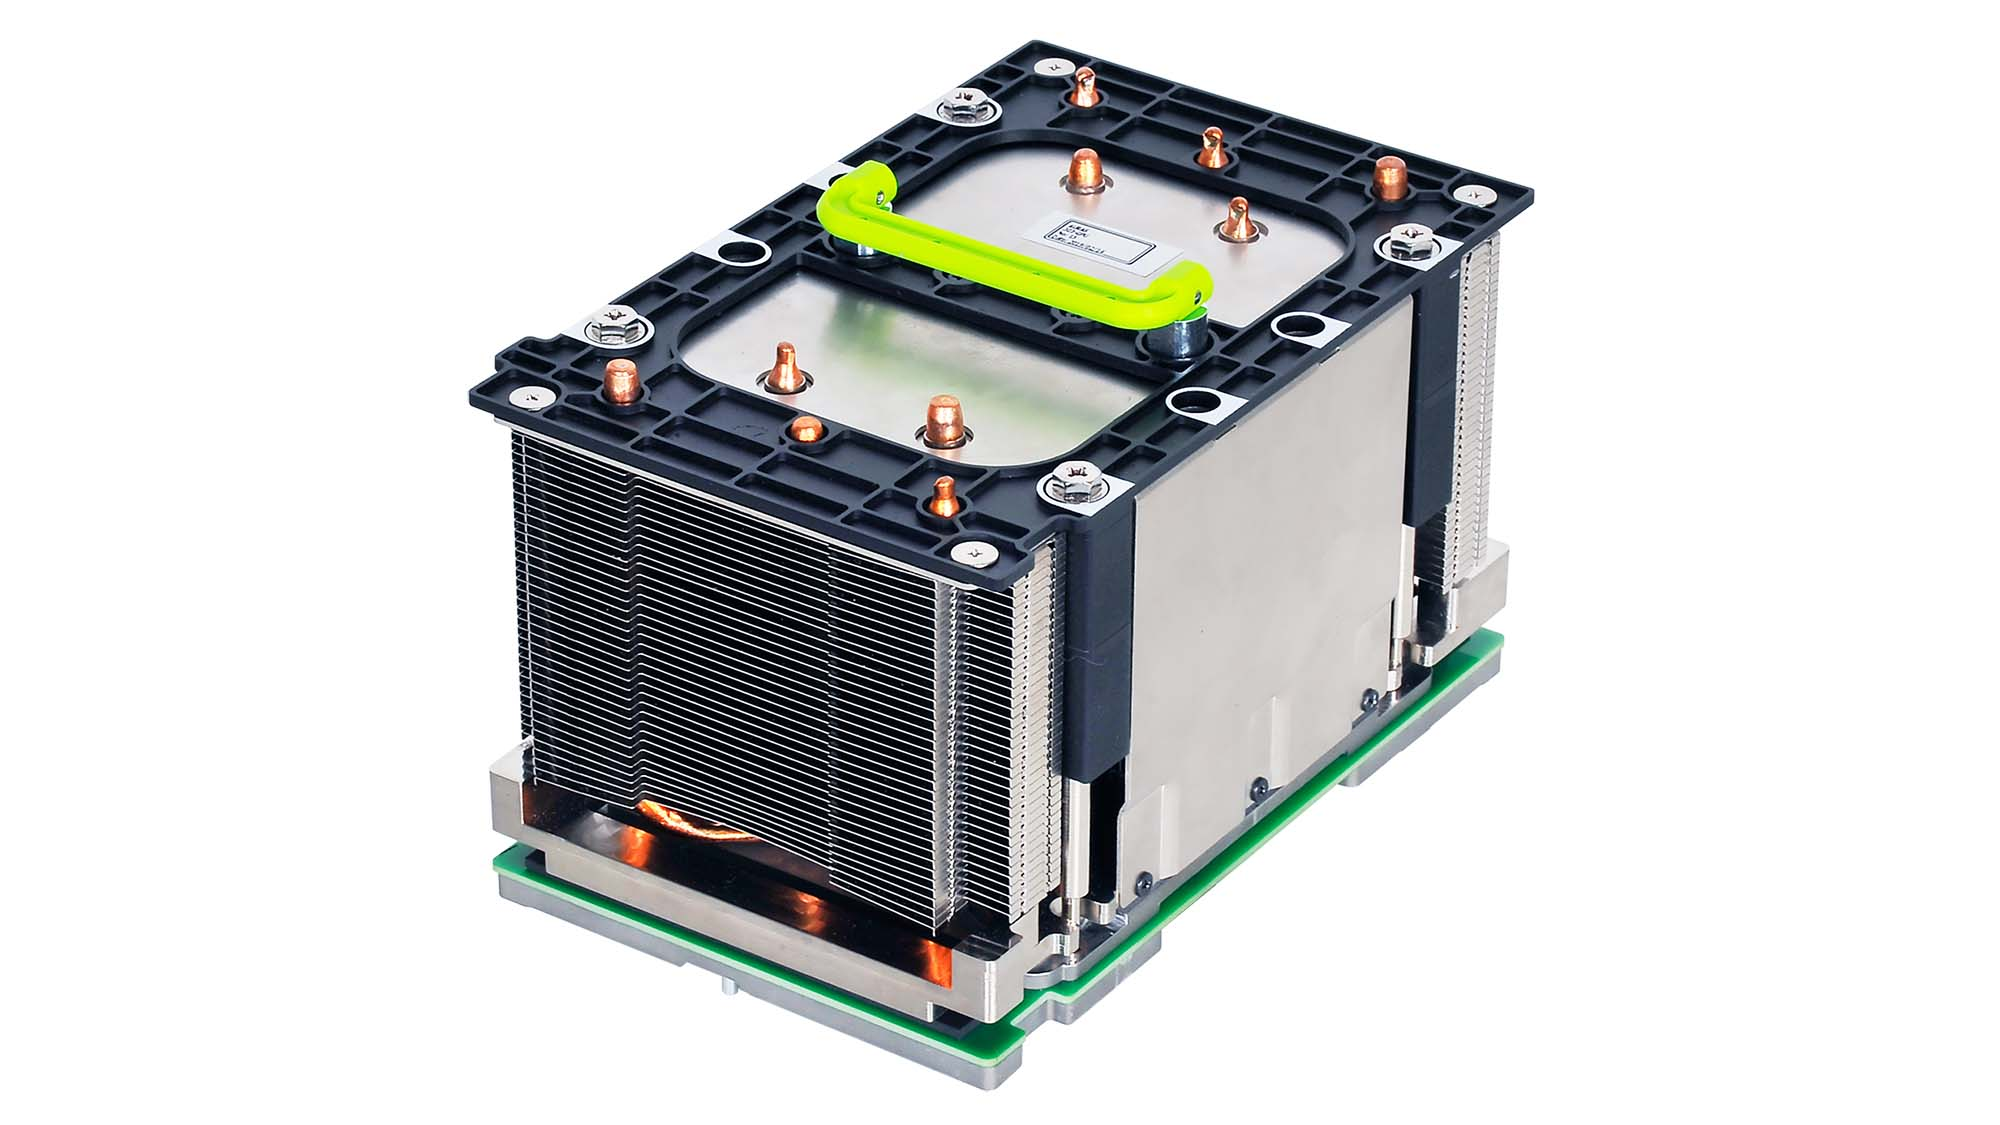 An example of an OAM module with heatsink.